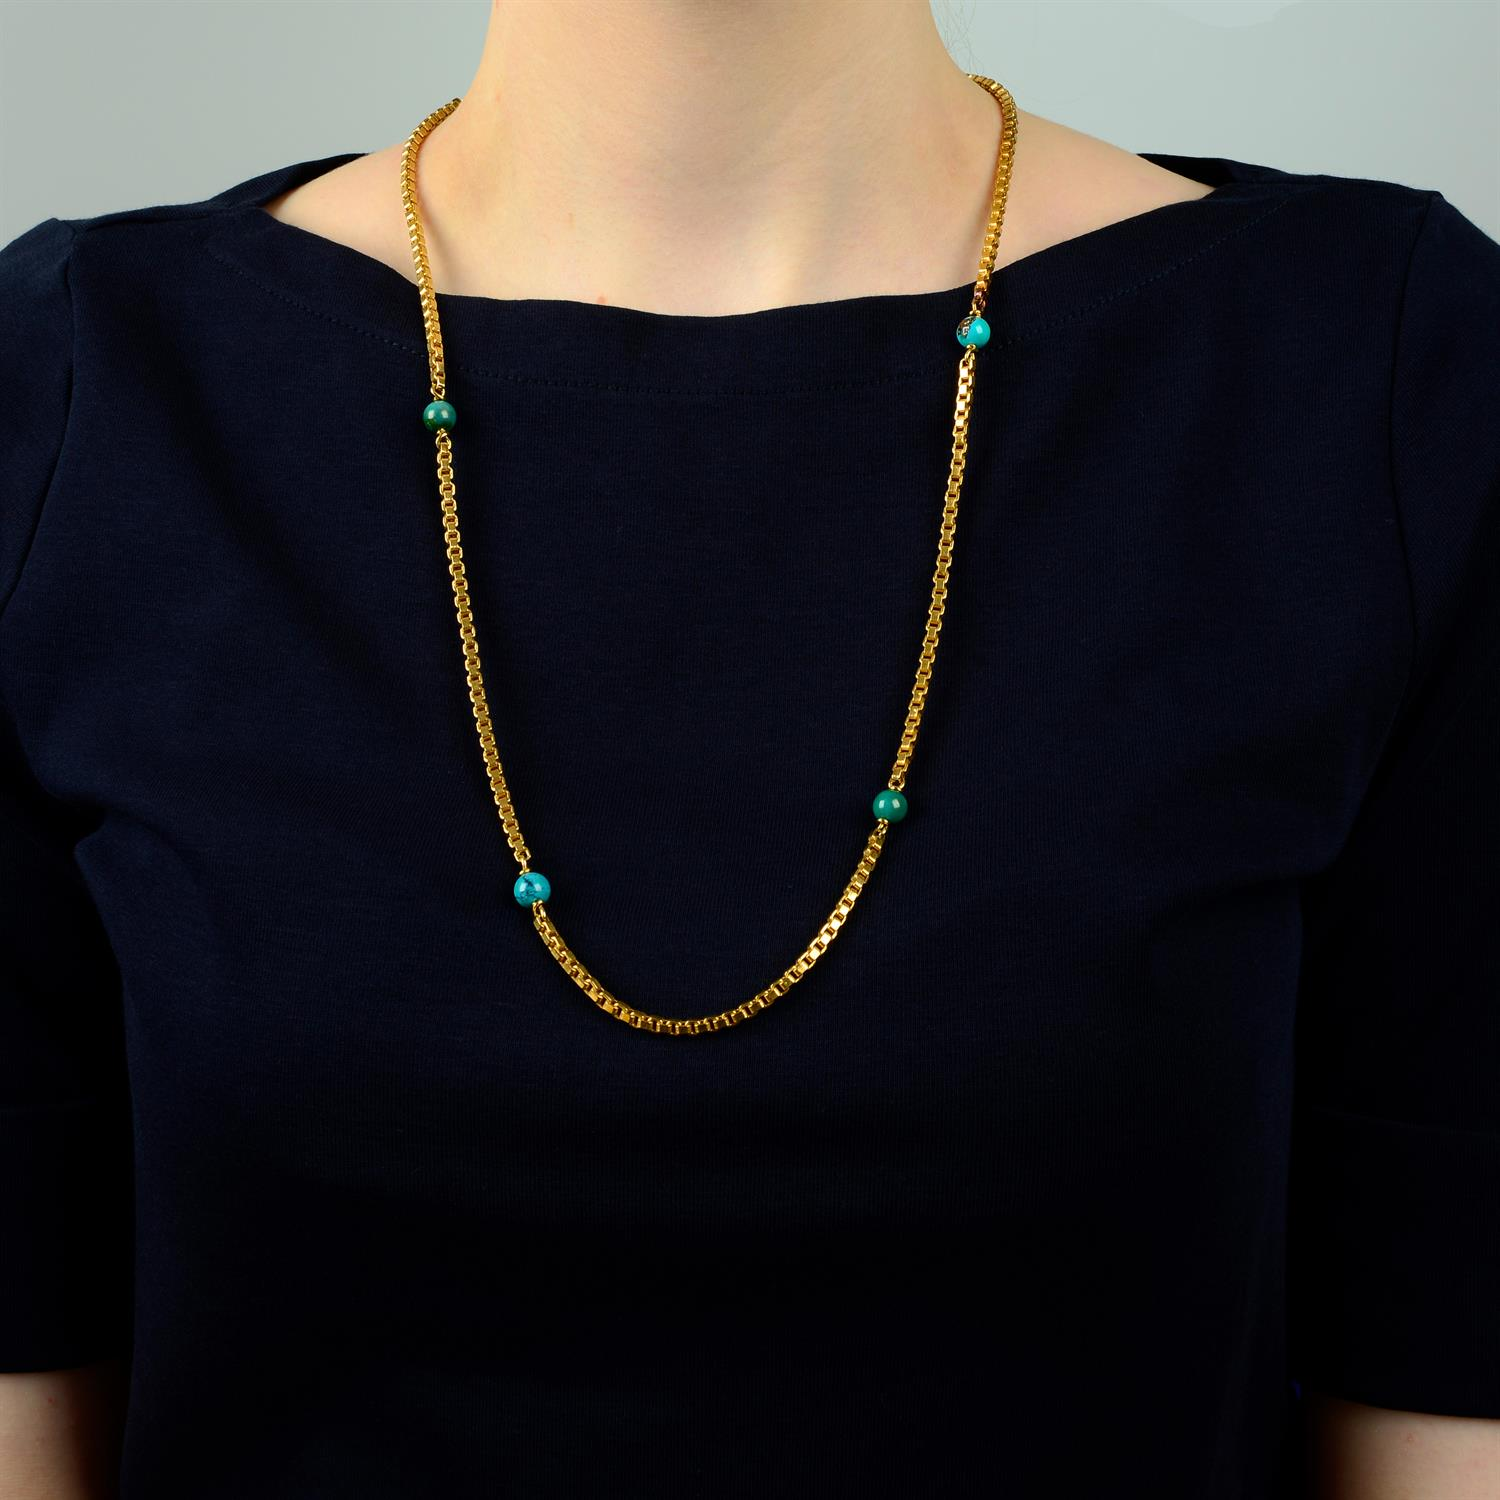 A mid 20th century Italian 18ct gold necklace, with turquoise matrix bead spacers, by Orf. - Image 5 of 5